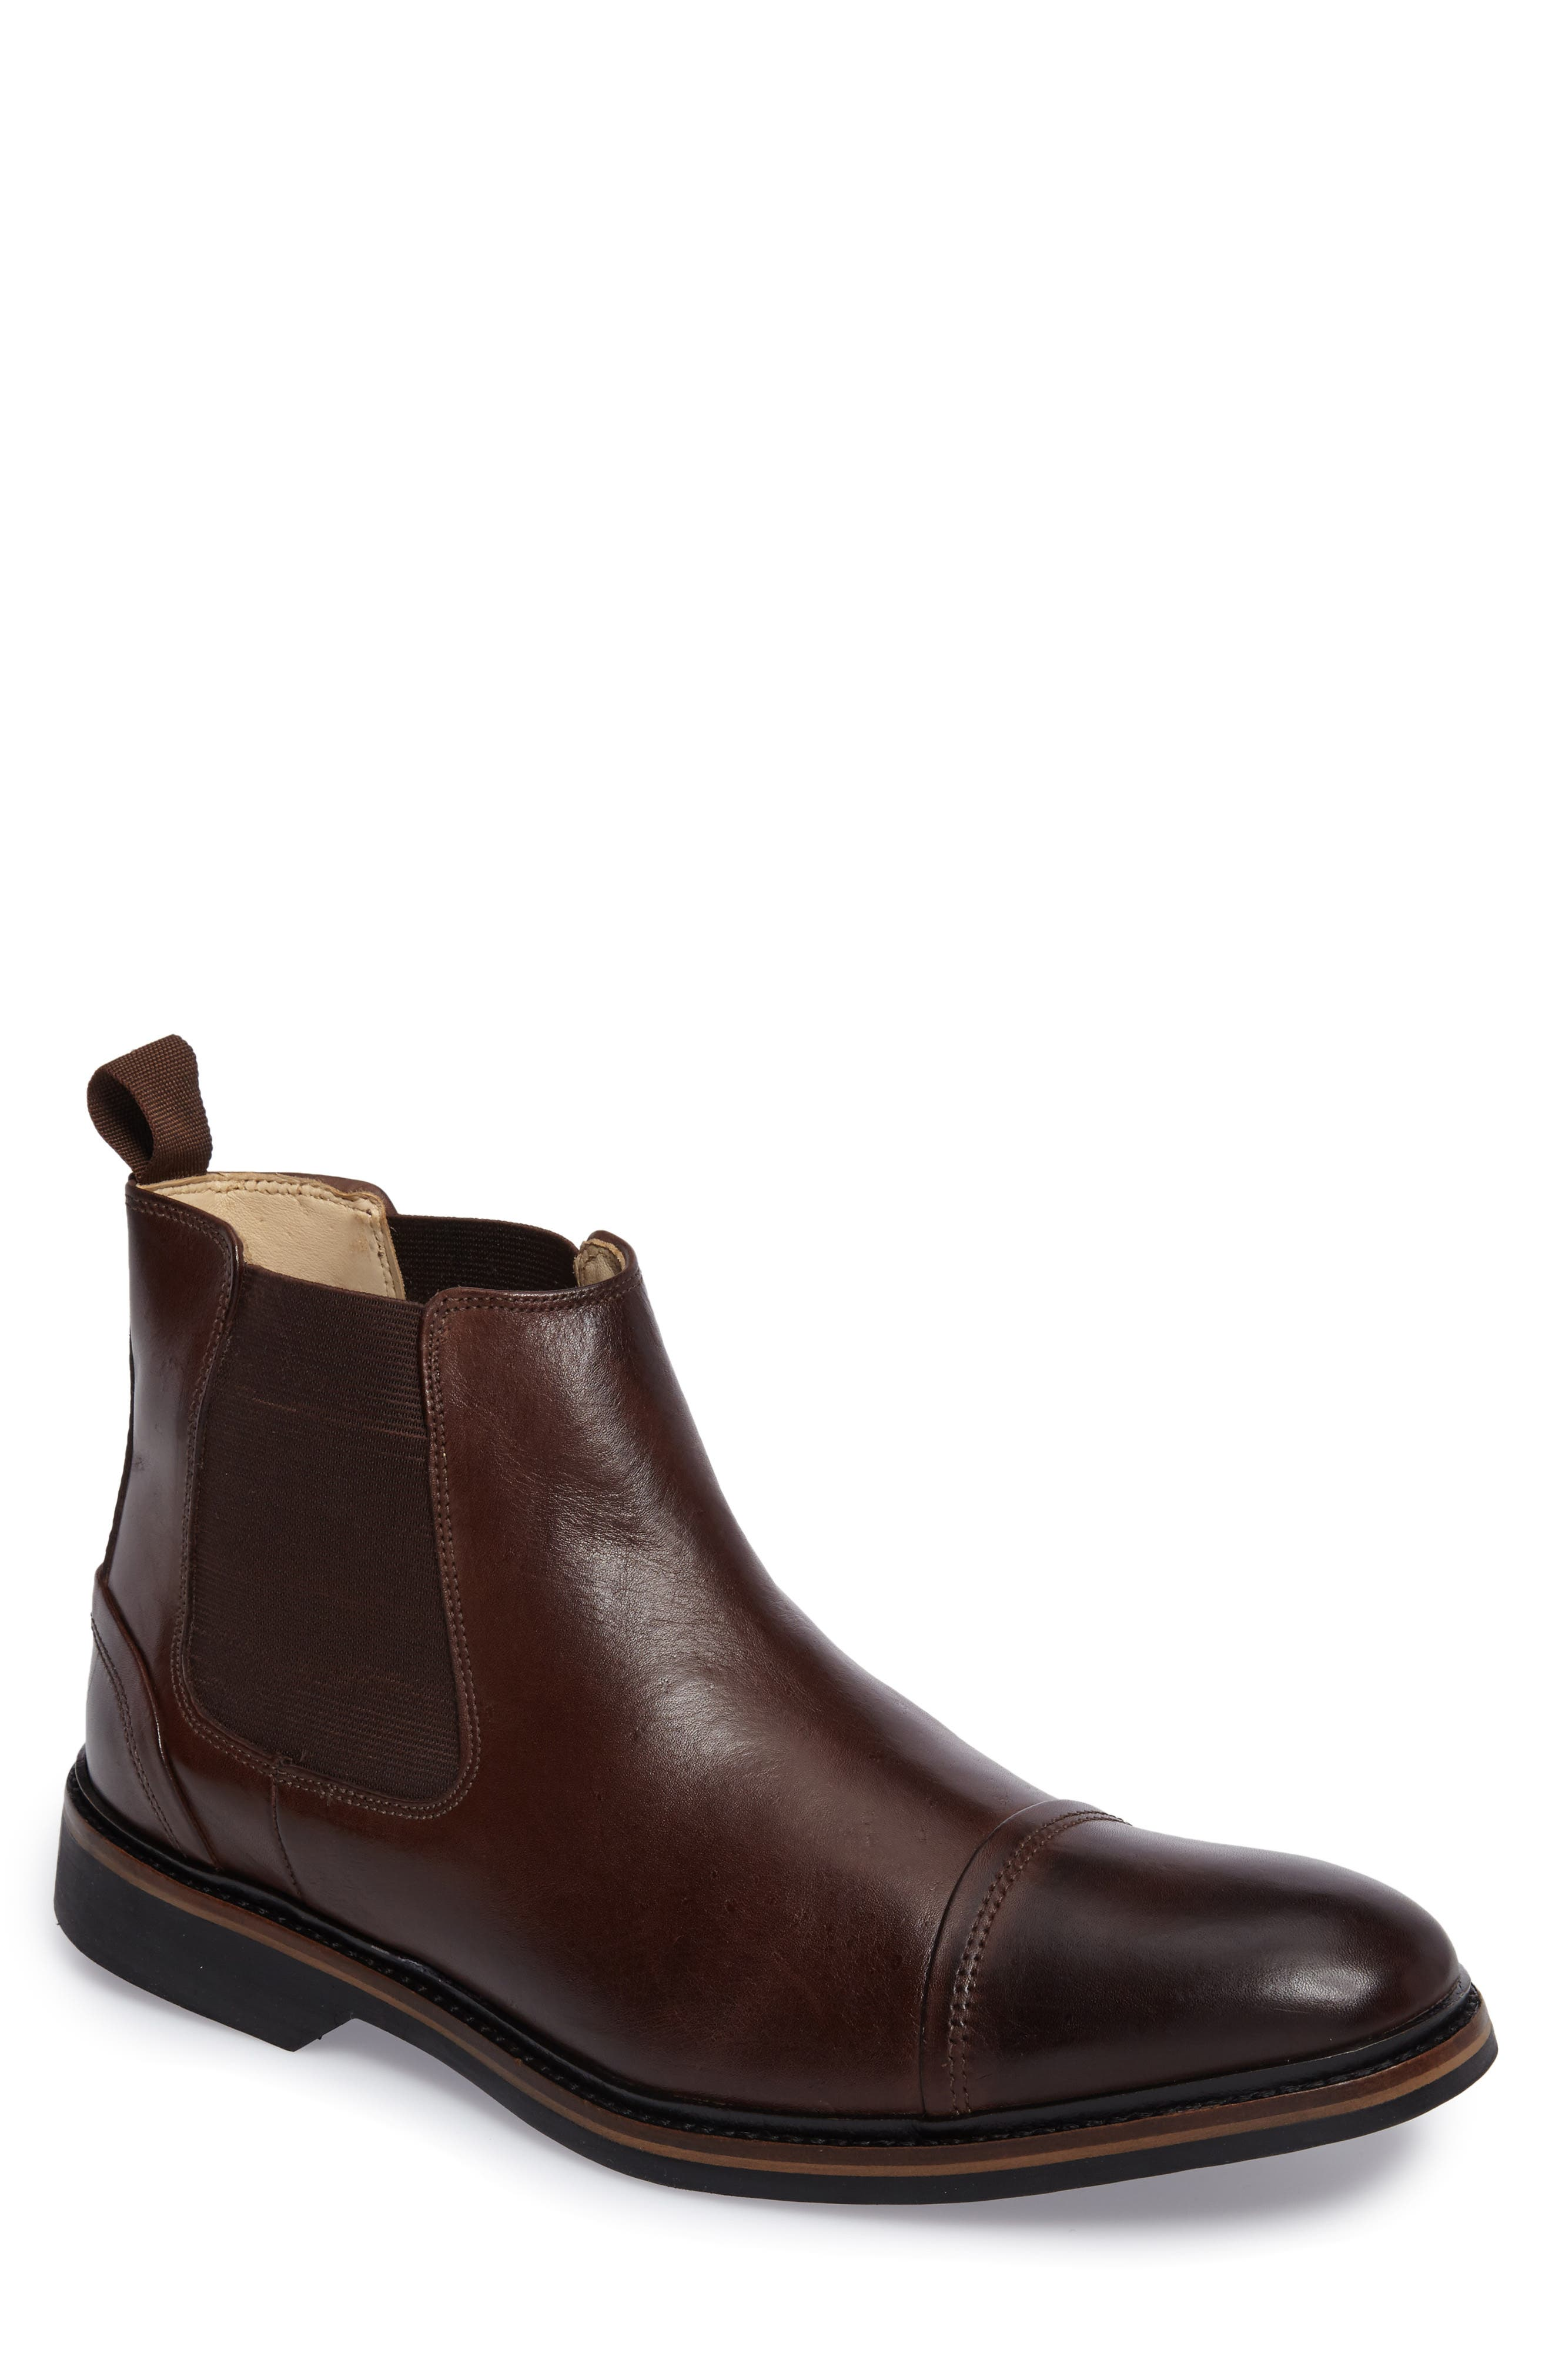 ANATOMIC & CO Floriano Chelsea Boot